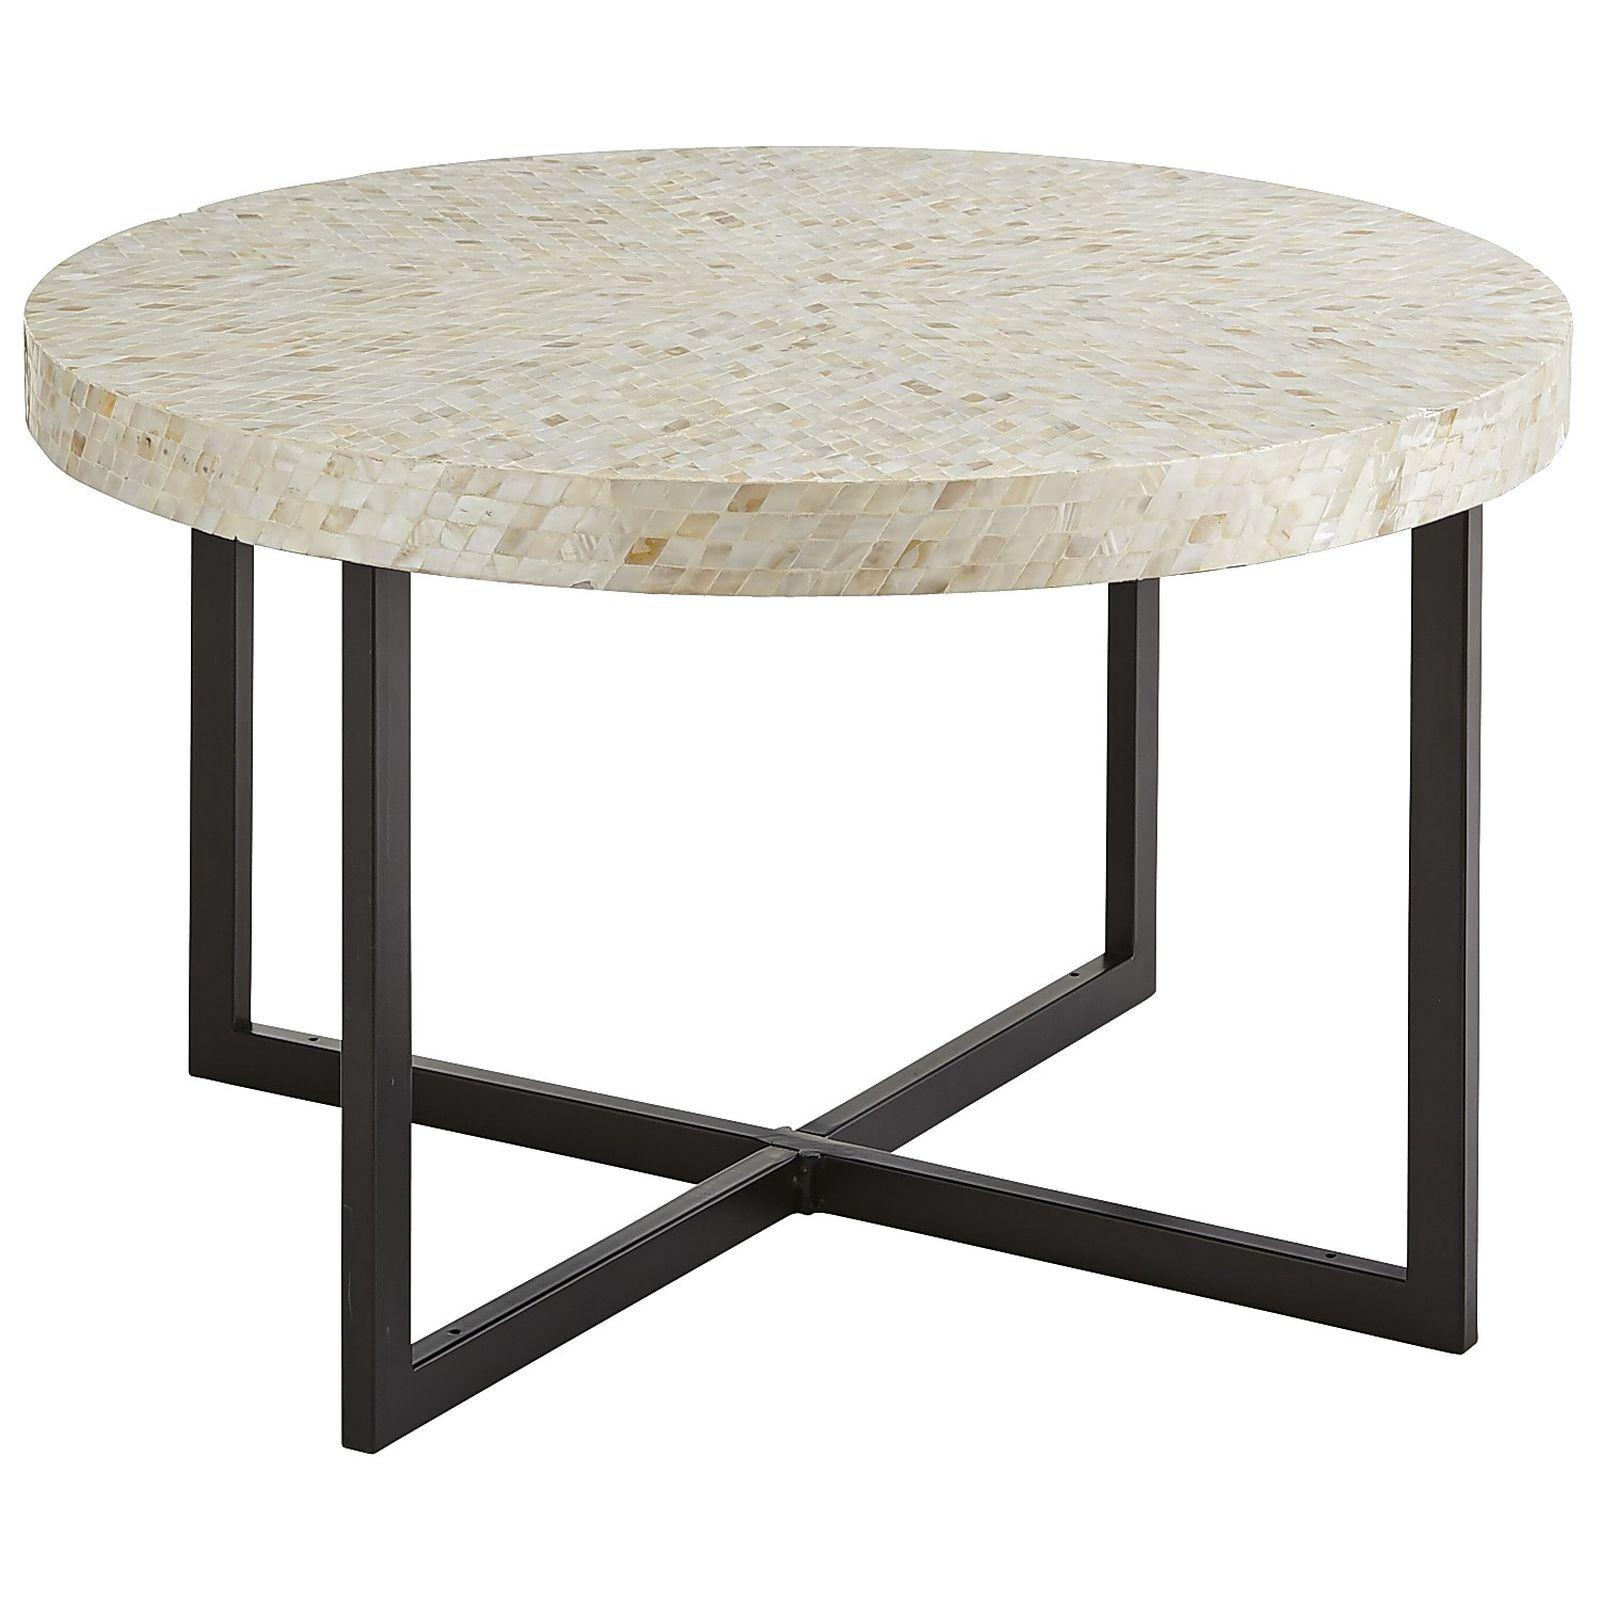 living cabinet threshold tables room round target table kijiji ott modern white and gold accent antique outdoor for decorative furniture tall bench glass fretwork teal full size